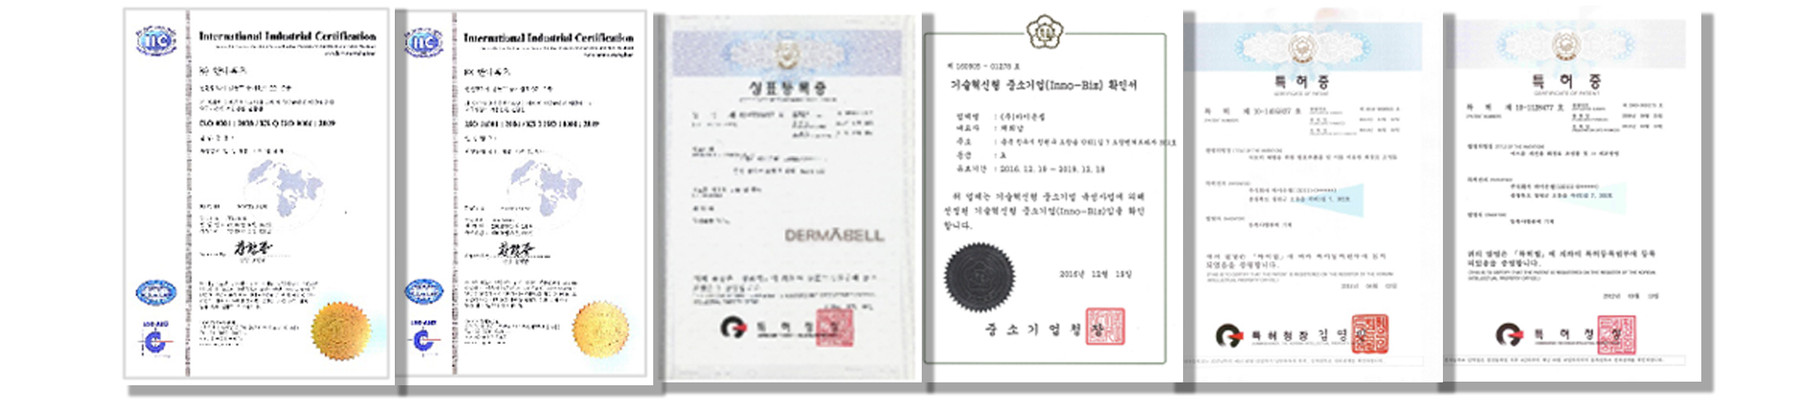 BeautySquare Certificates copy3.jpg